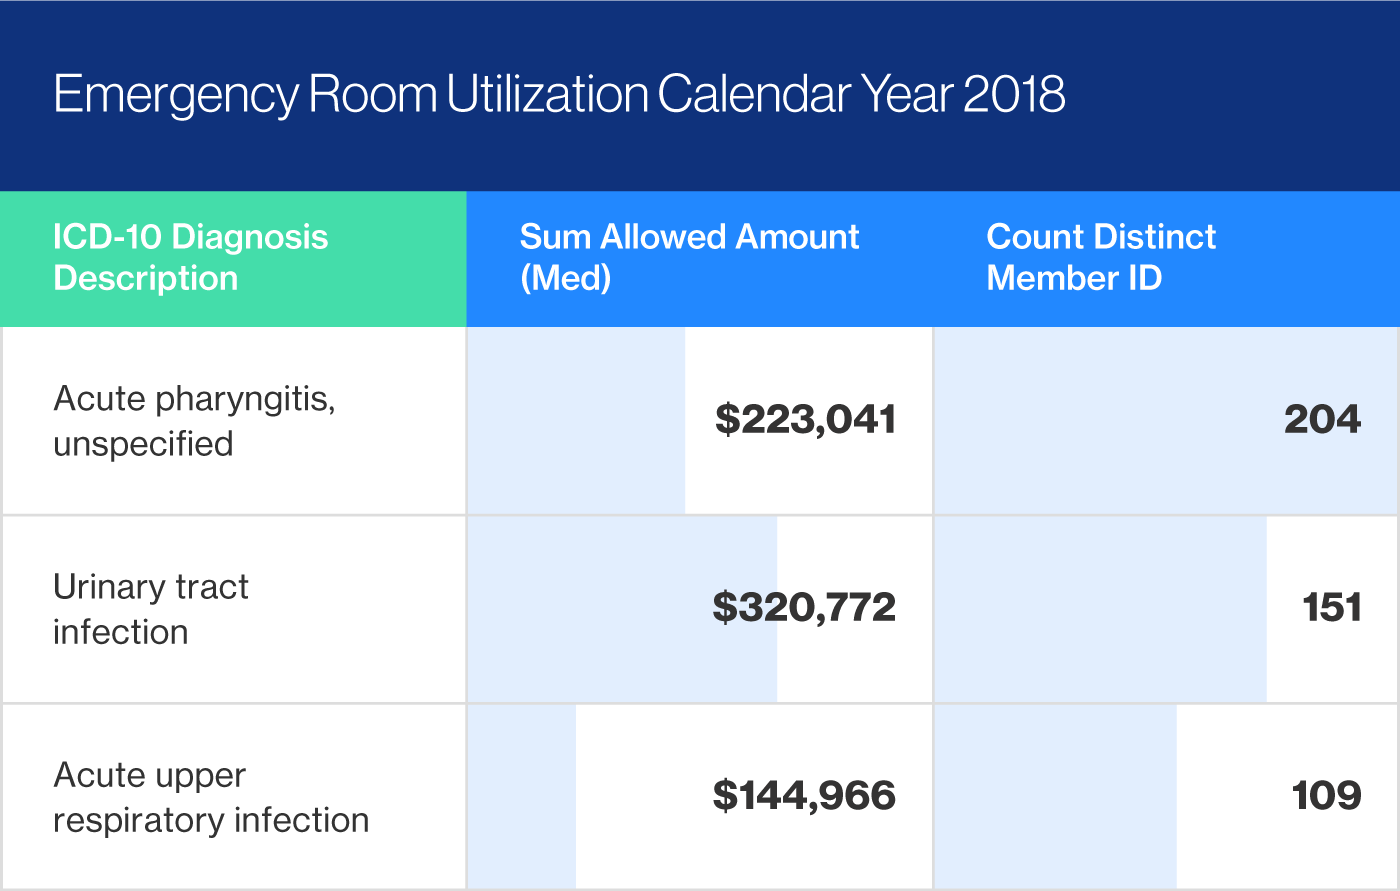 Emergency Room Utilization for 2018 indicates potential savings.